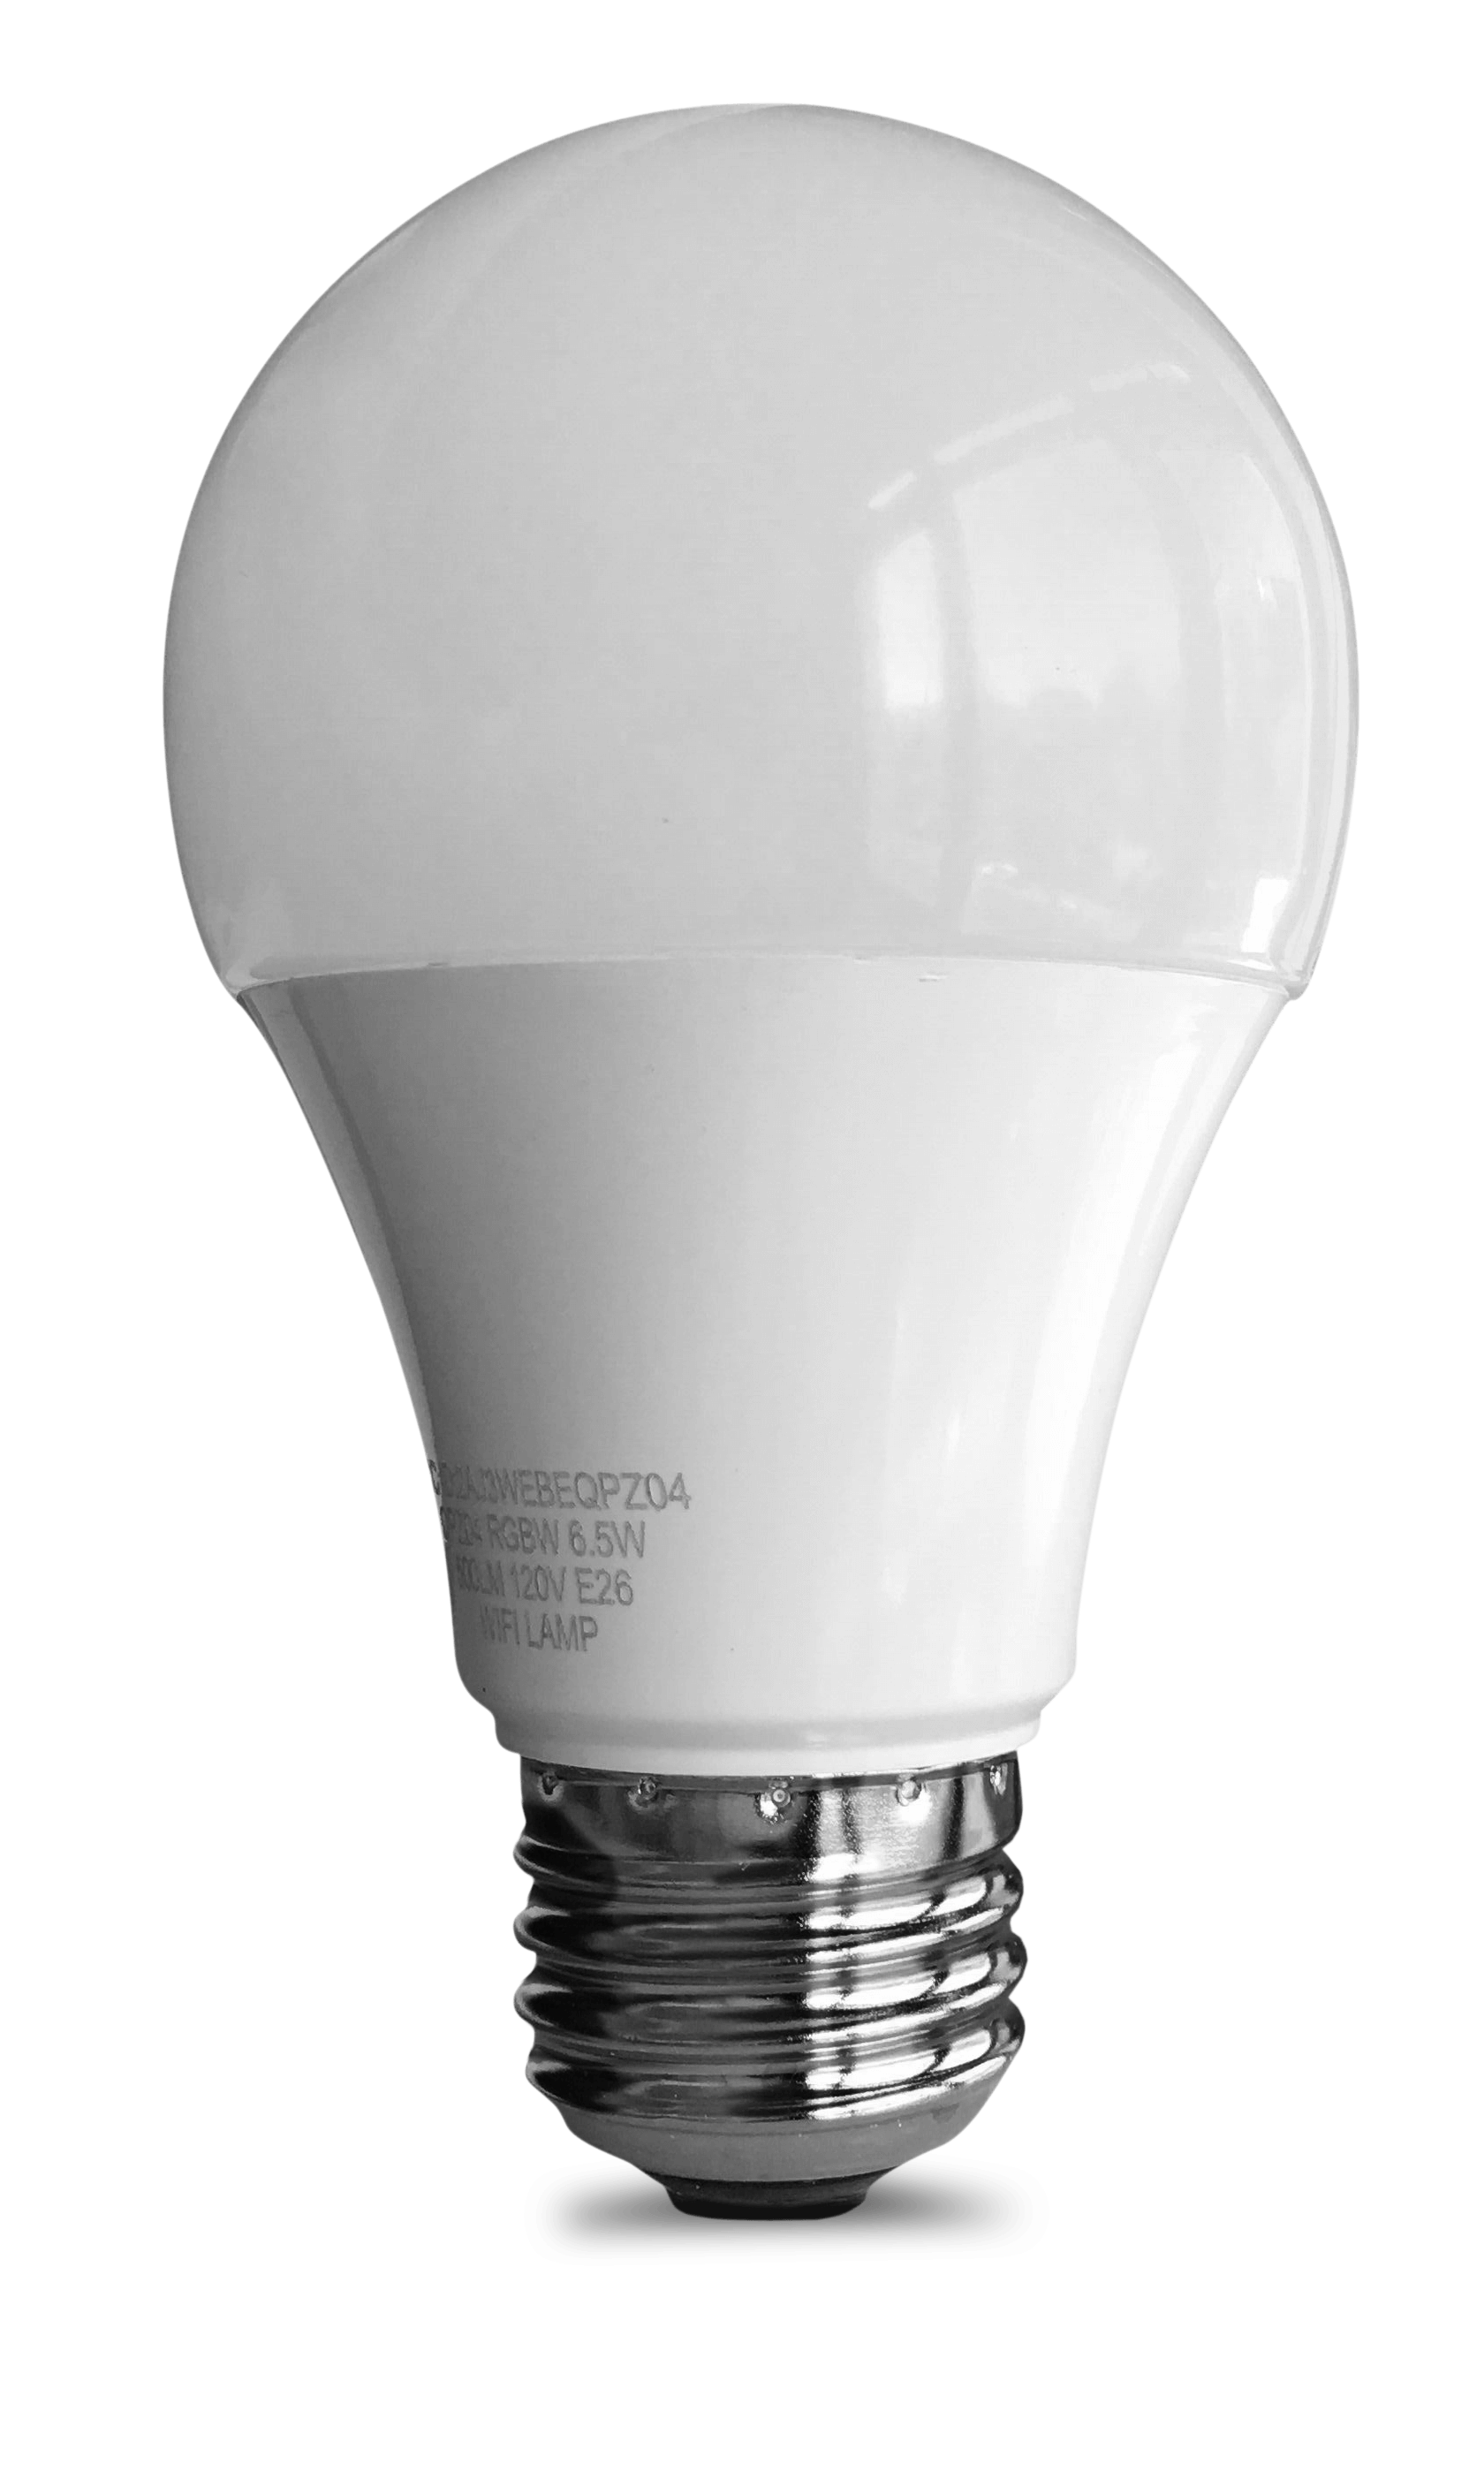 [US Direct] Original ECO4LIFE WiFi Smart Color Changing LED Bulb, Compatible with Alexa, Google Assistant, IFTTT (Single Pack)